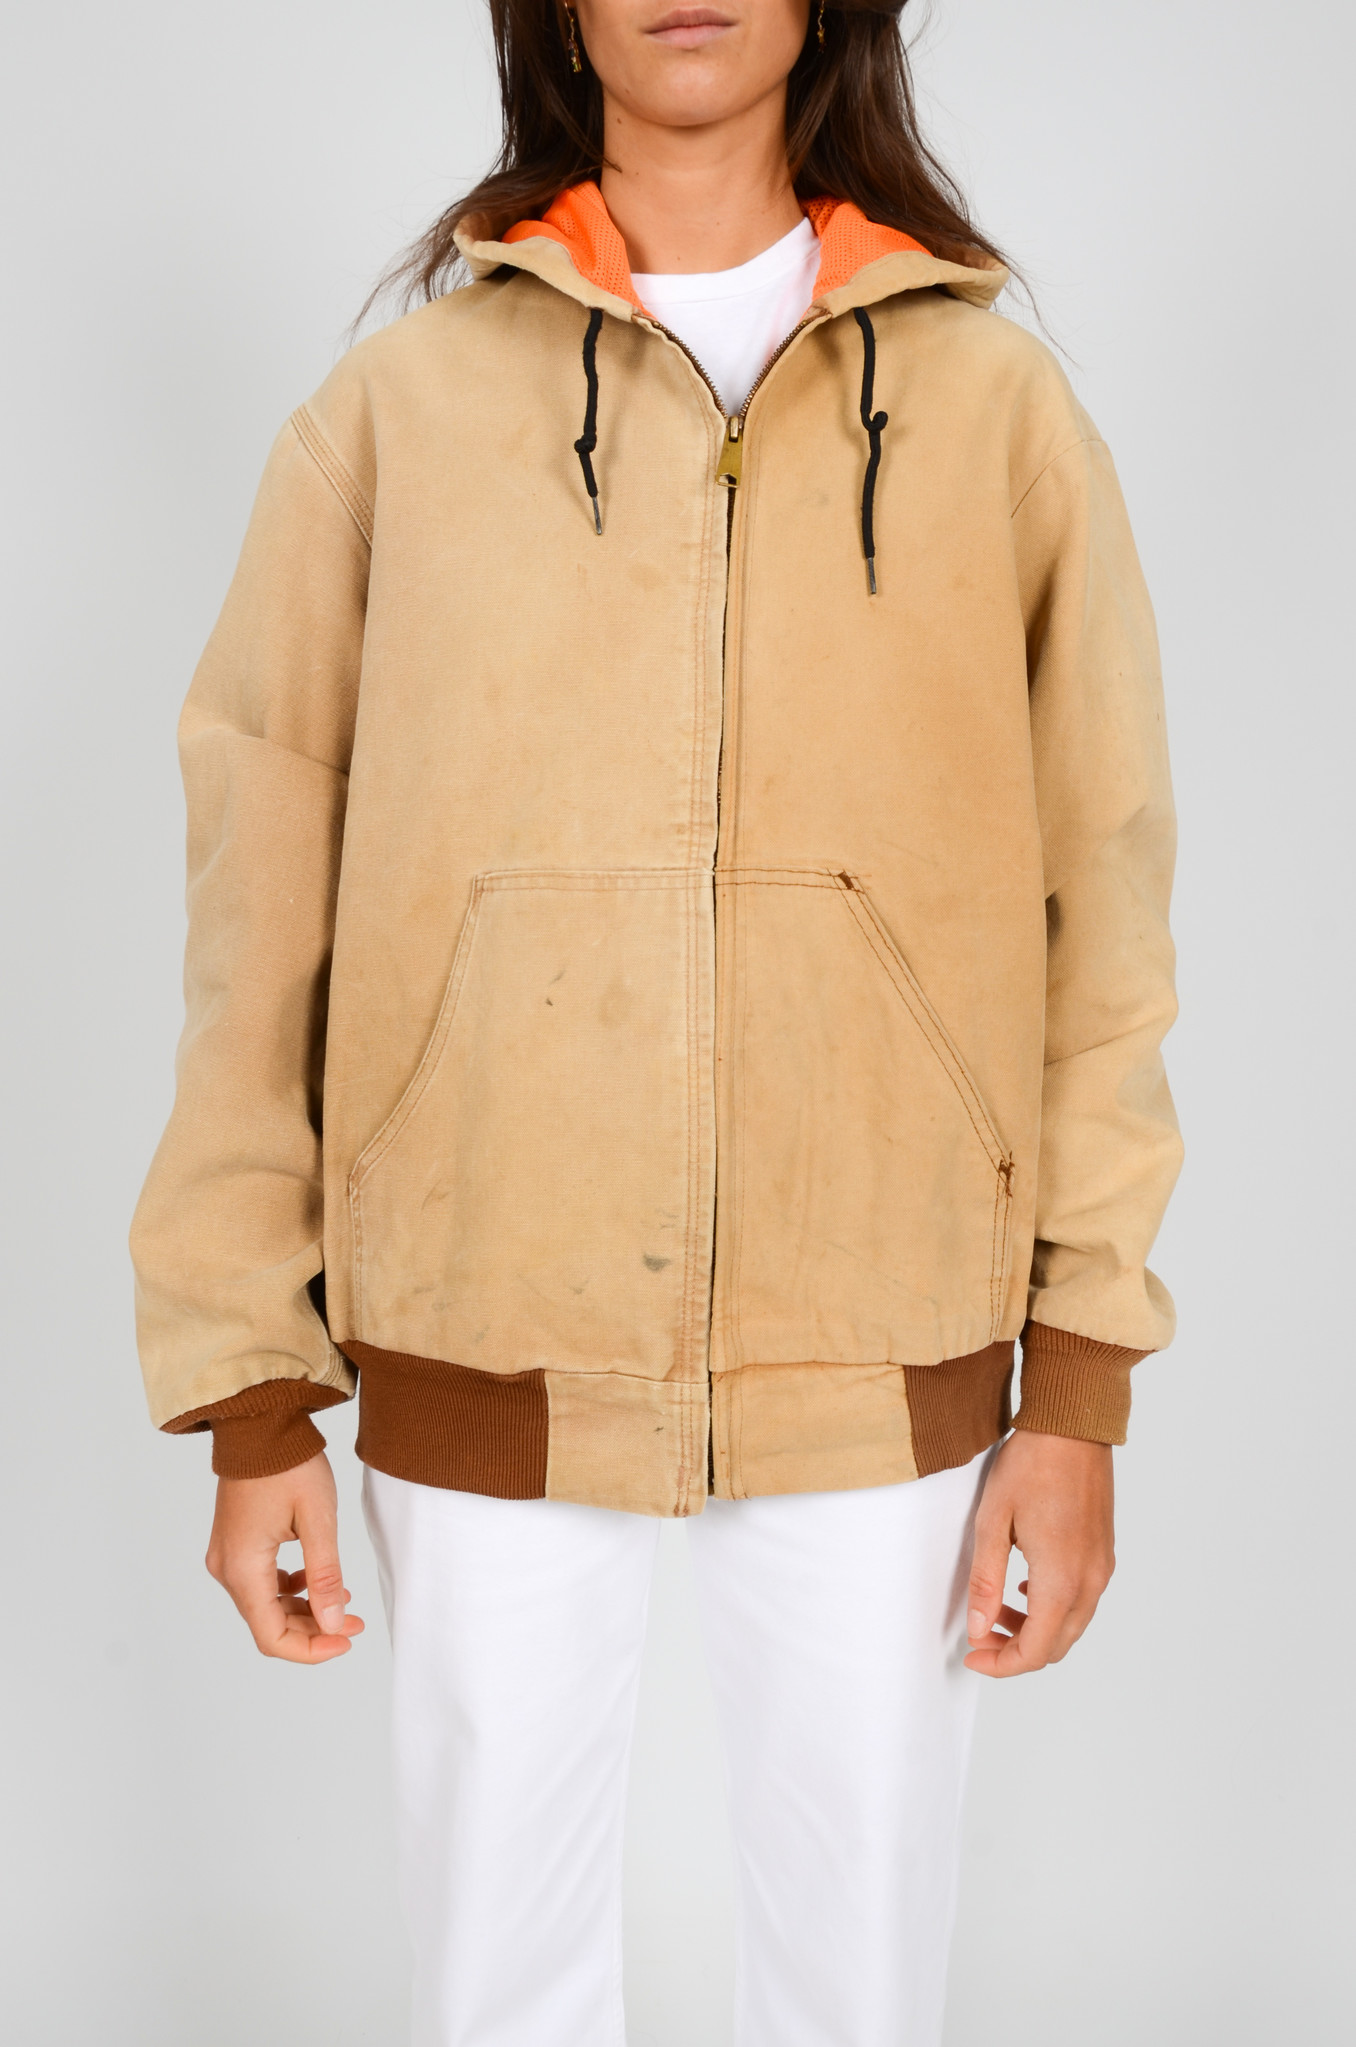 CARHARTT REVISITED JACKET-1